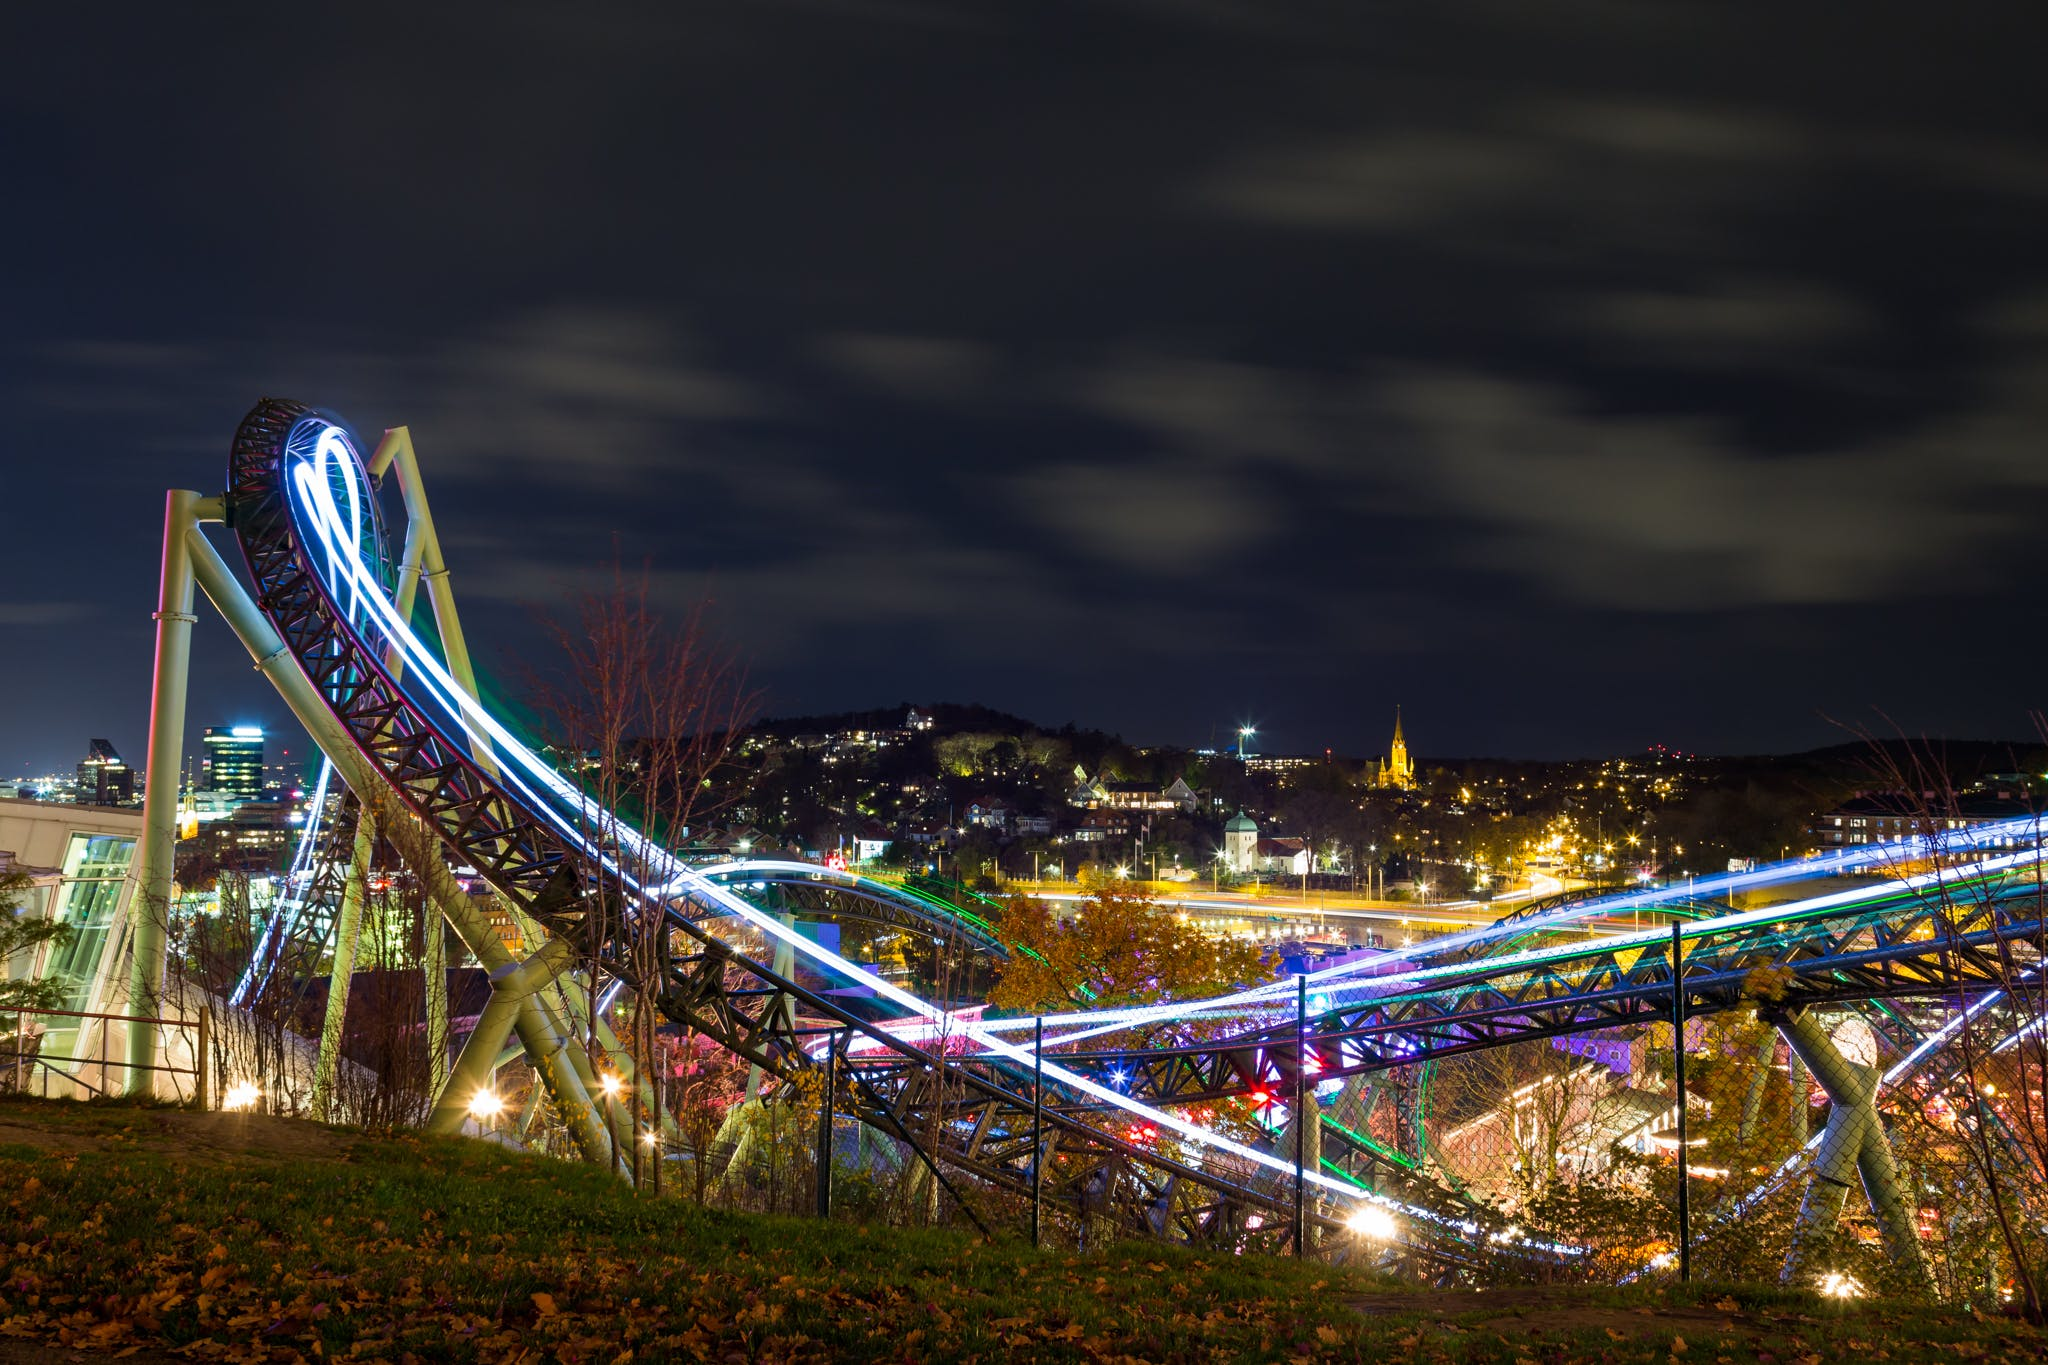 Time-lapse Photography Of Roller Coaster During Night Time